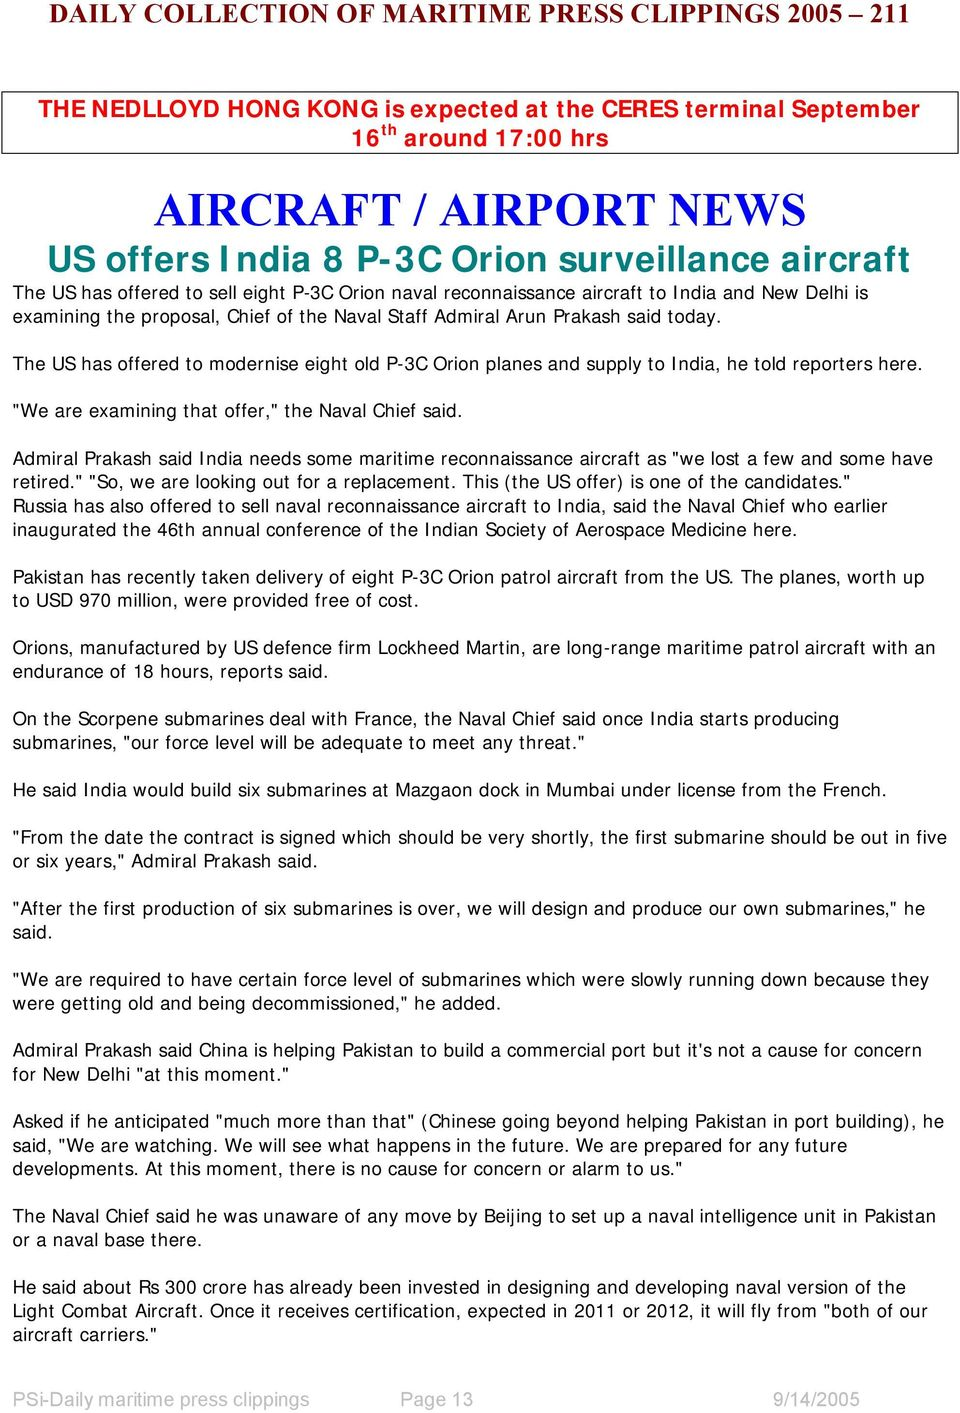 "The US has offered to modernise eight old P-3C Orion planes and supply to India, he told reporters here. ""We are examining that offer,"" the Naval Chief said."